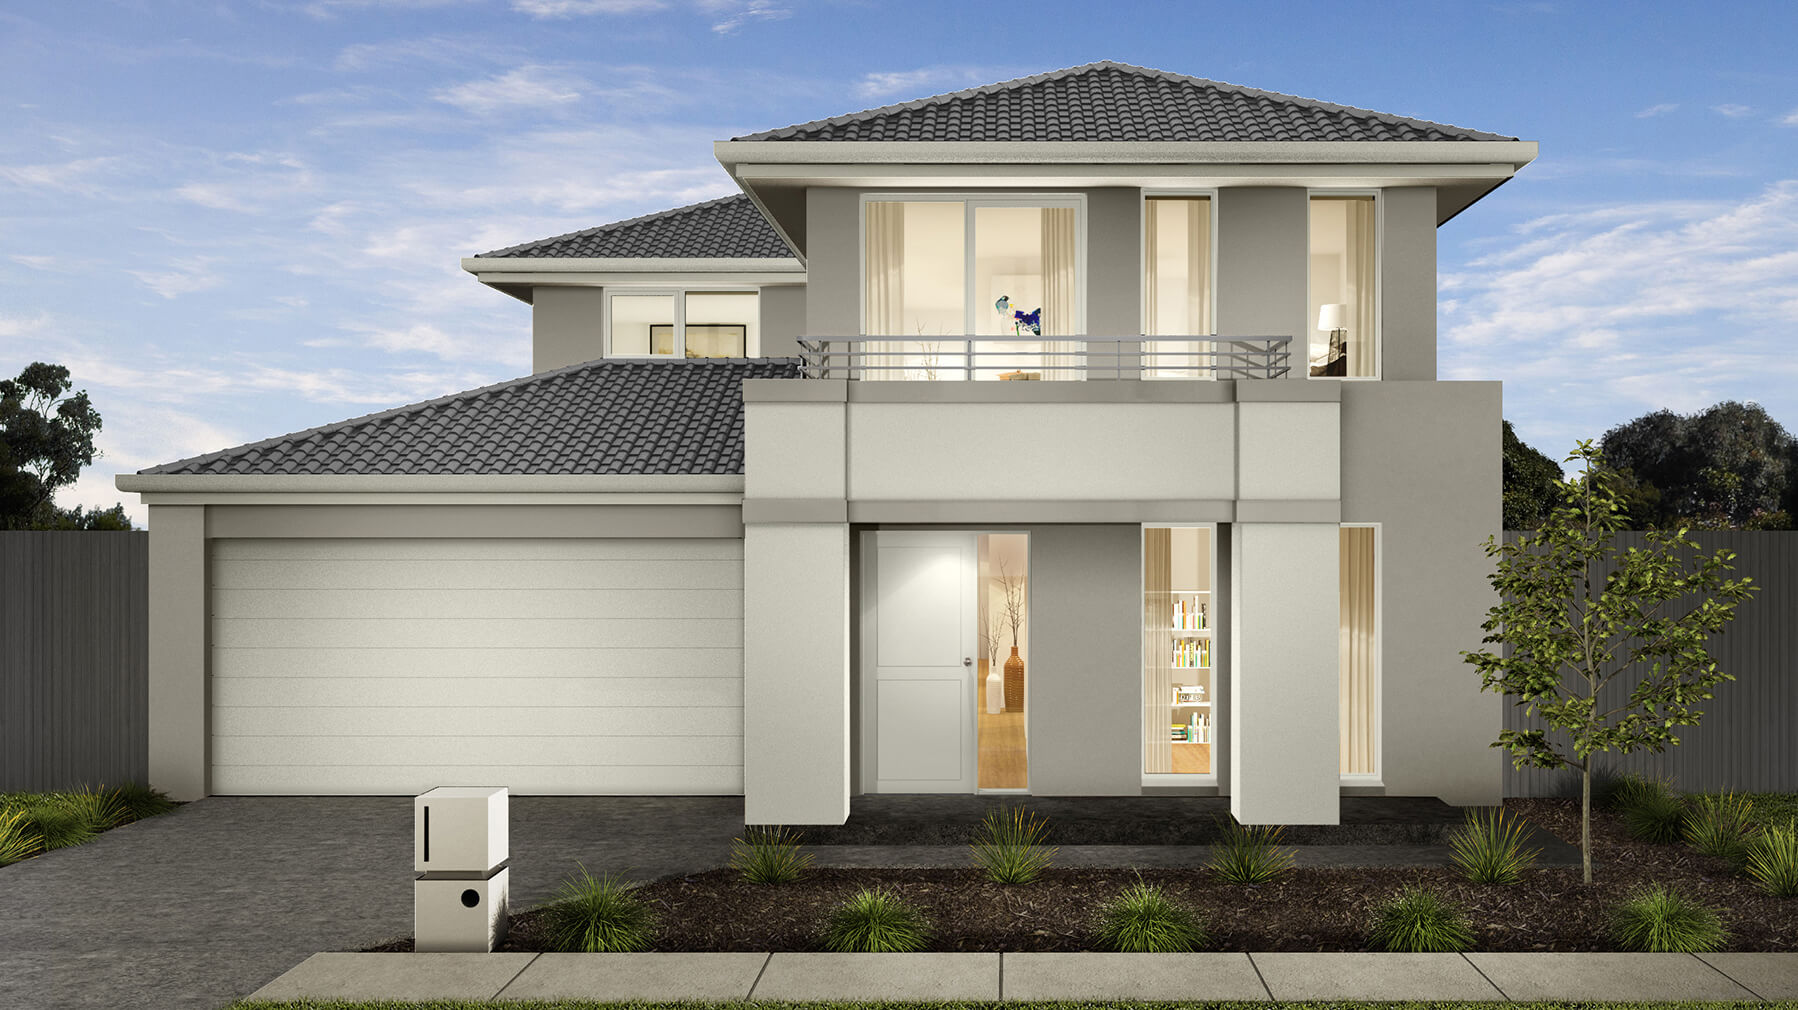 EASYLIVING SANDRIDGE 12.5 (HEBEL) Exterior Image 1